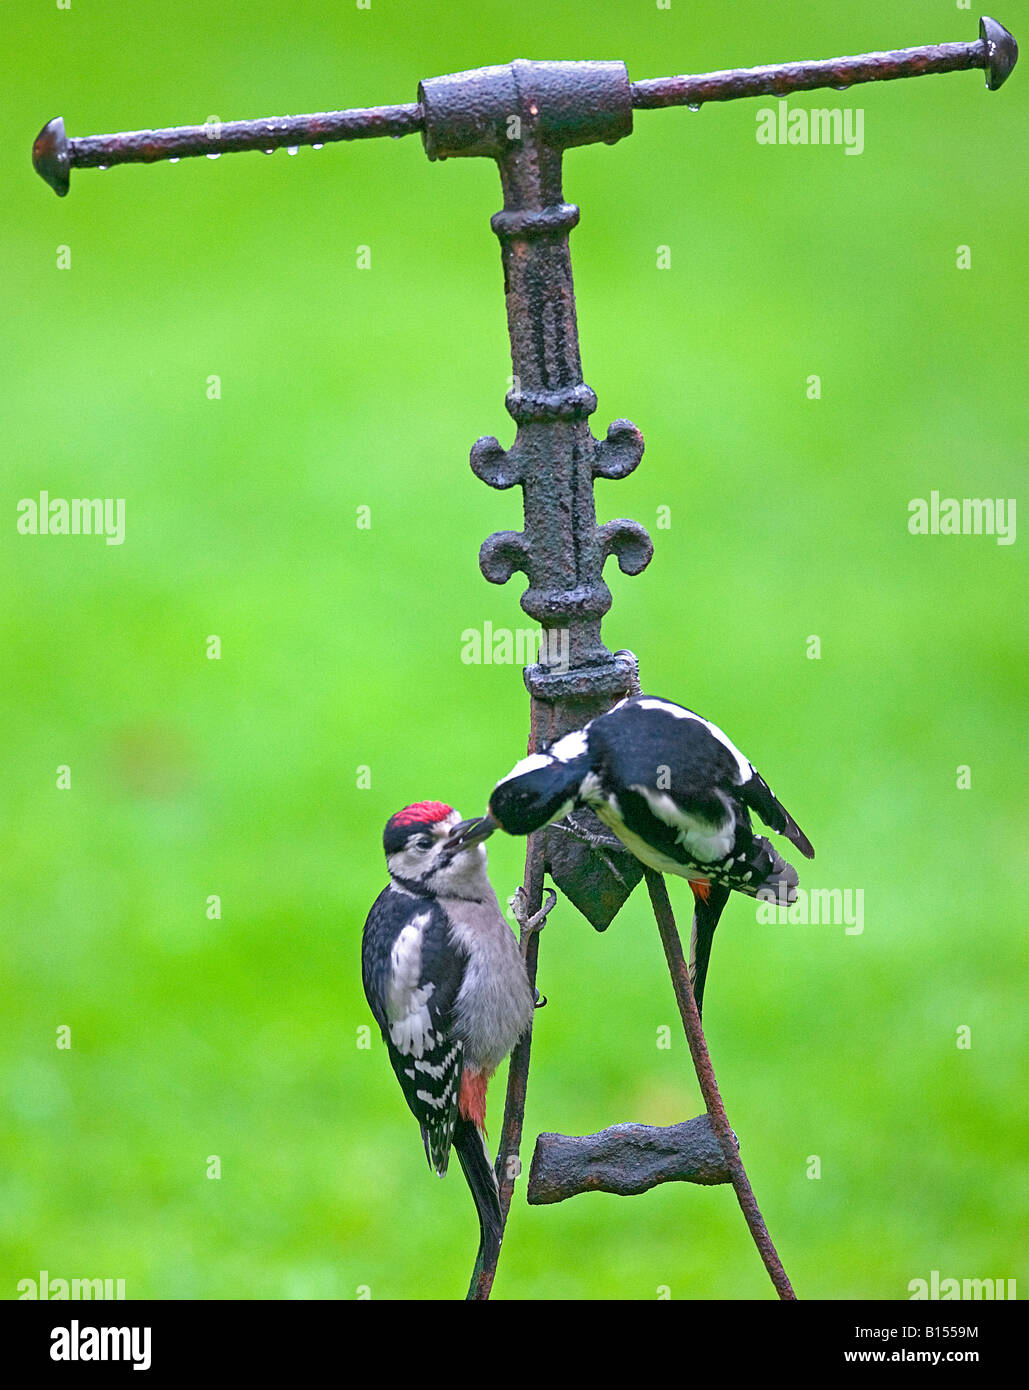 Greater spotted woodpeckers  (Dendrocopos major)  feeding on garden roller. - Stock Image